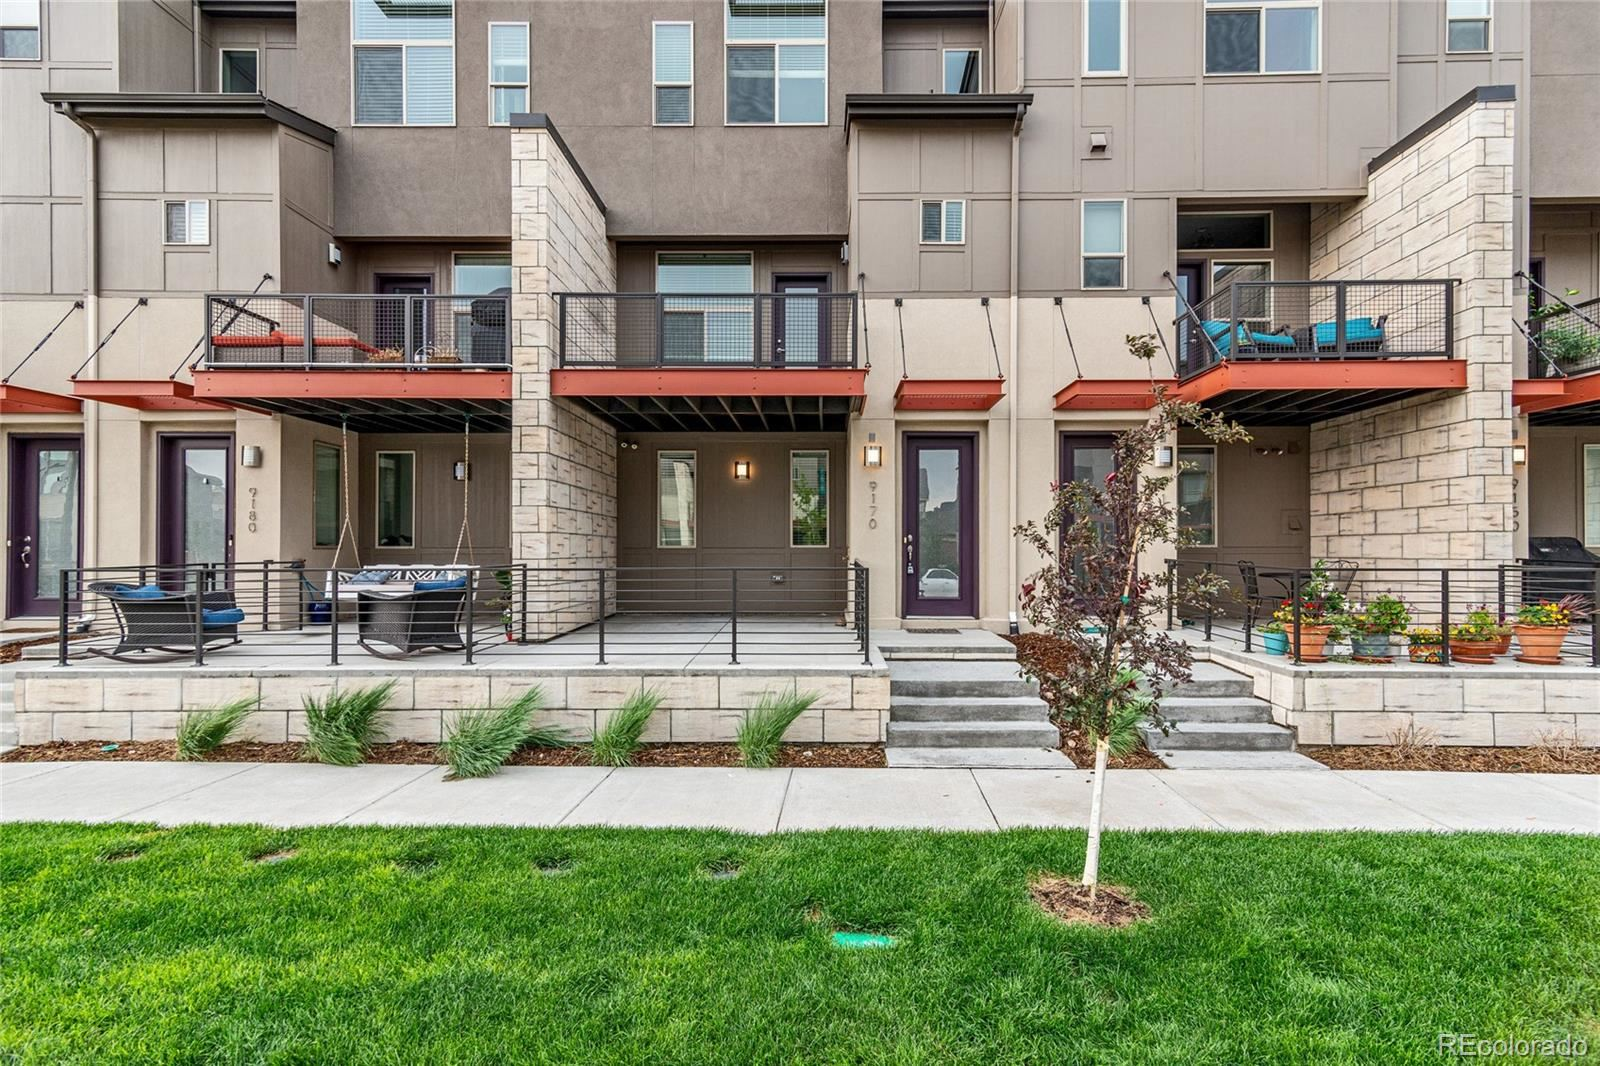 9170 E 52nd Drive, Denver, CO 80238 - #: 2831452